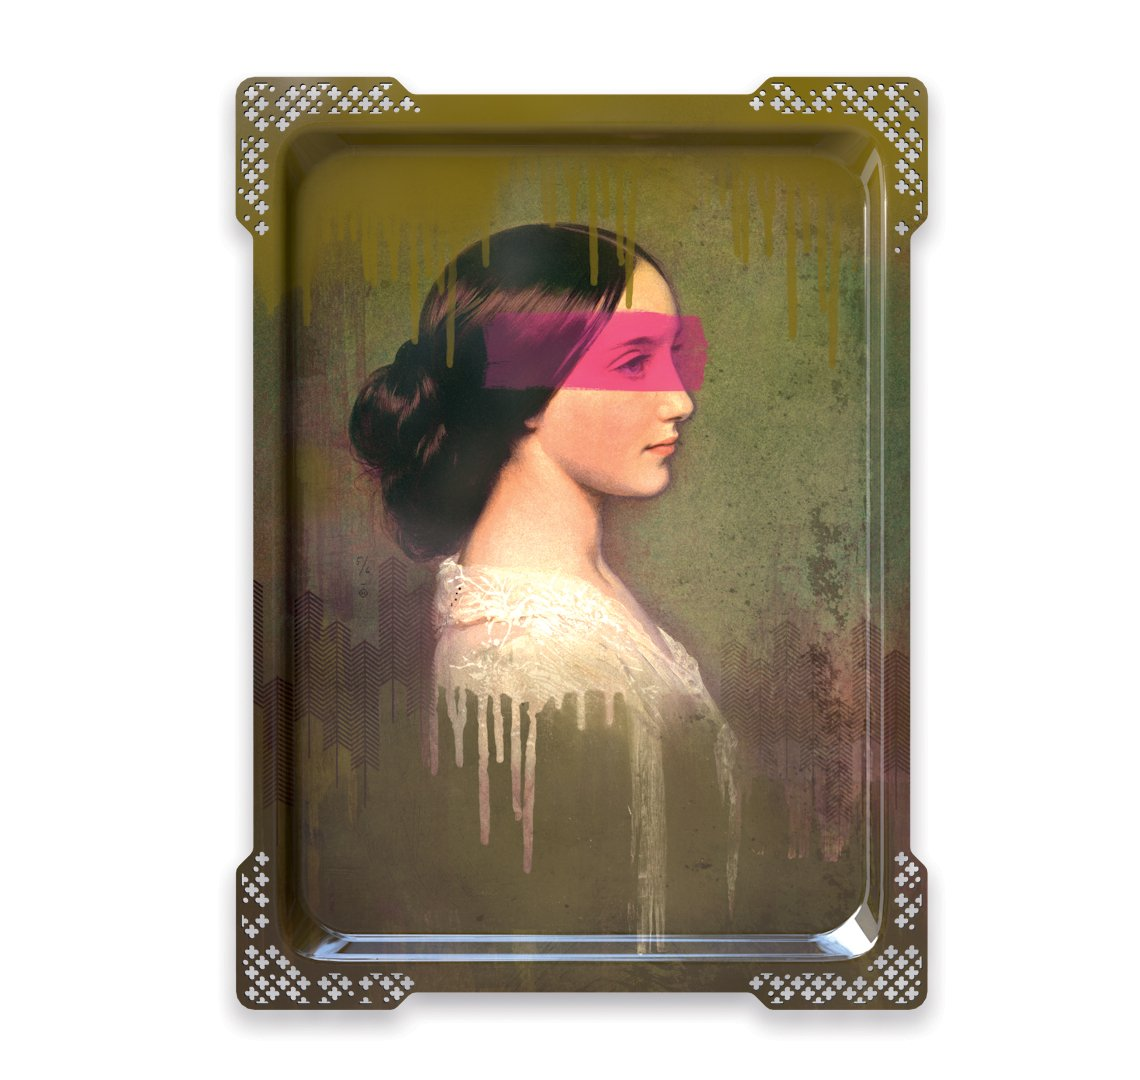 Ida Variations Number Five - Galerie De Portraits - Surreal Wall Tray Art Masterwork by iBride